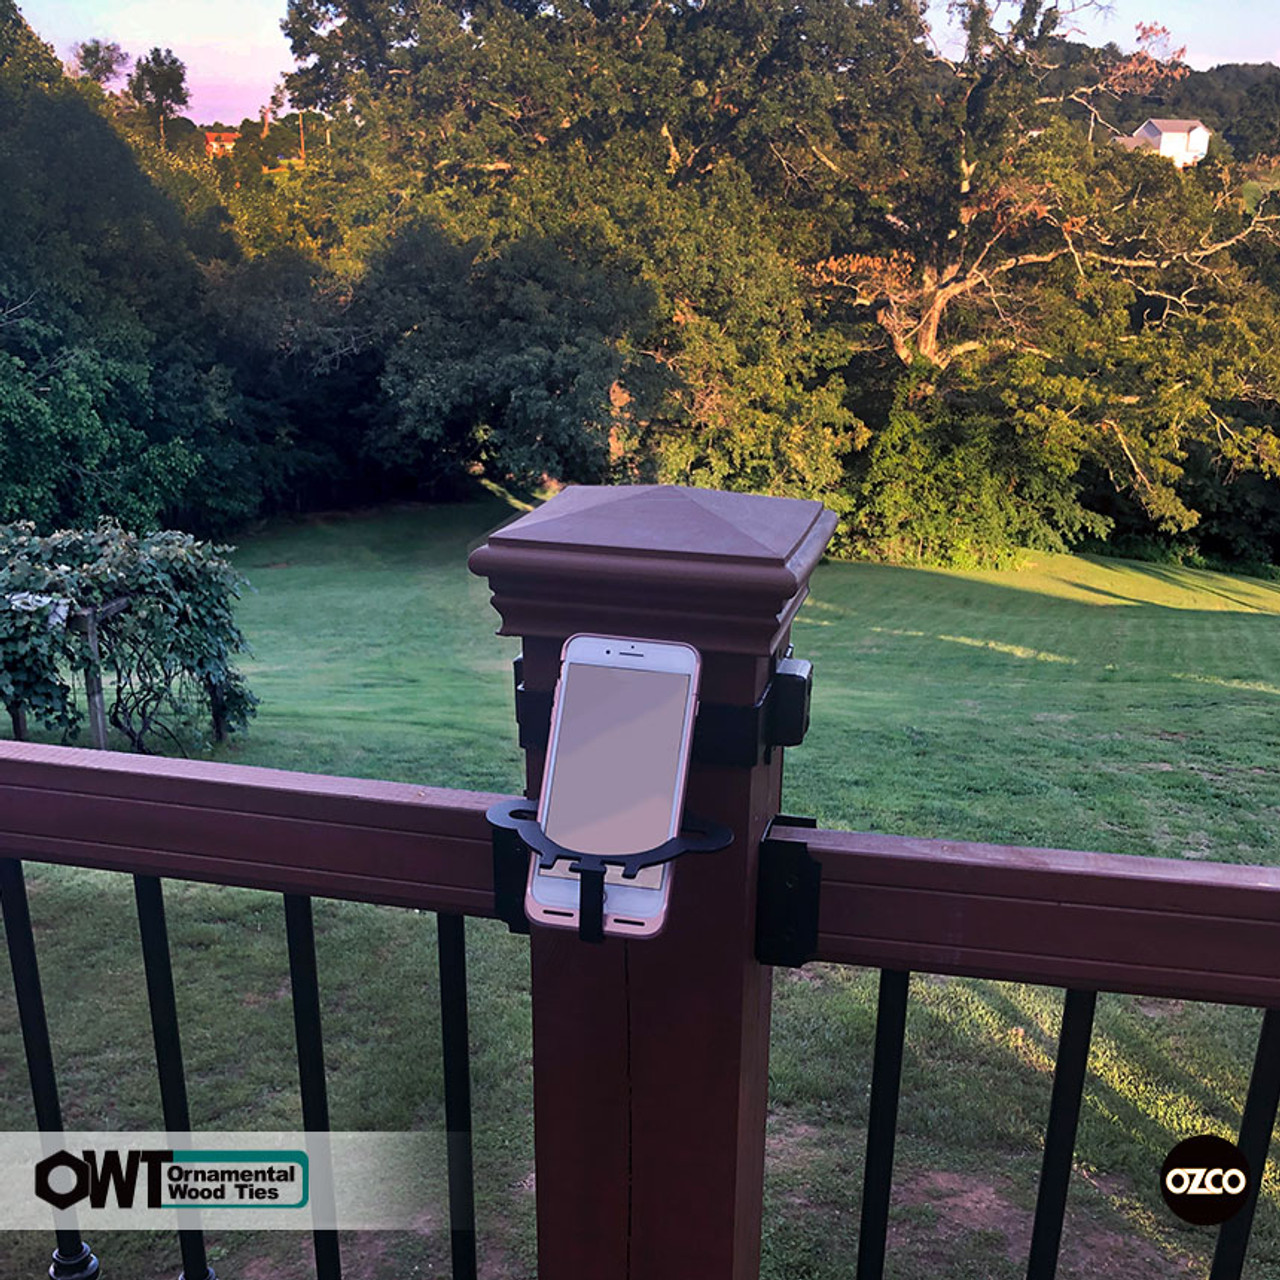 OZCO OWT Post Band with Can Holder / Cell Phone Holder Accessory